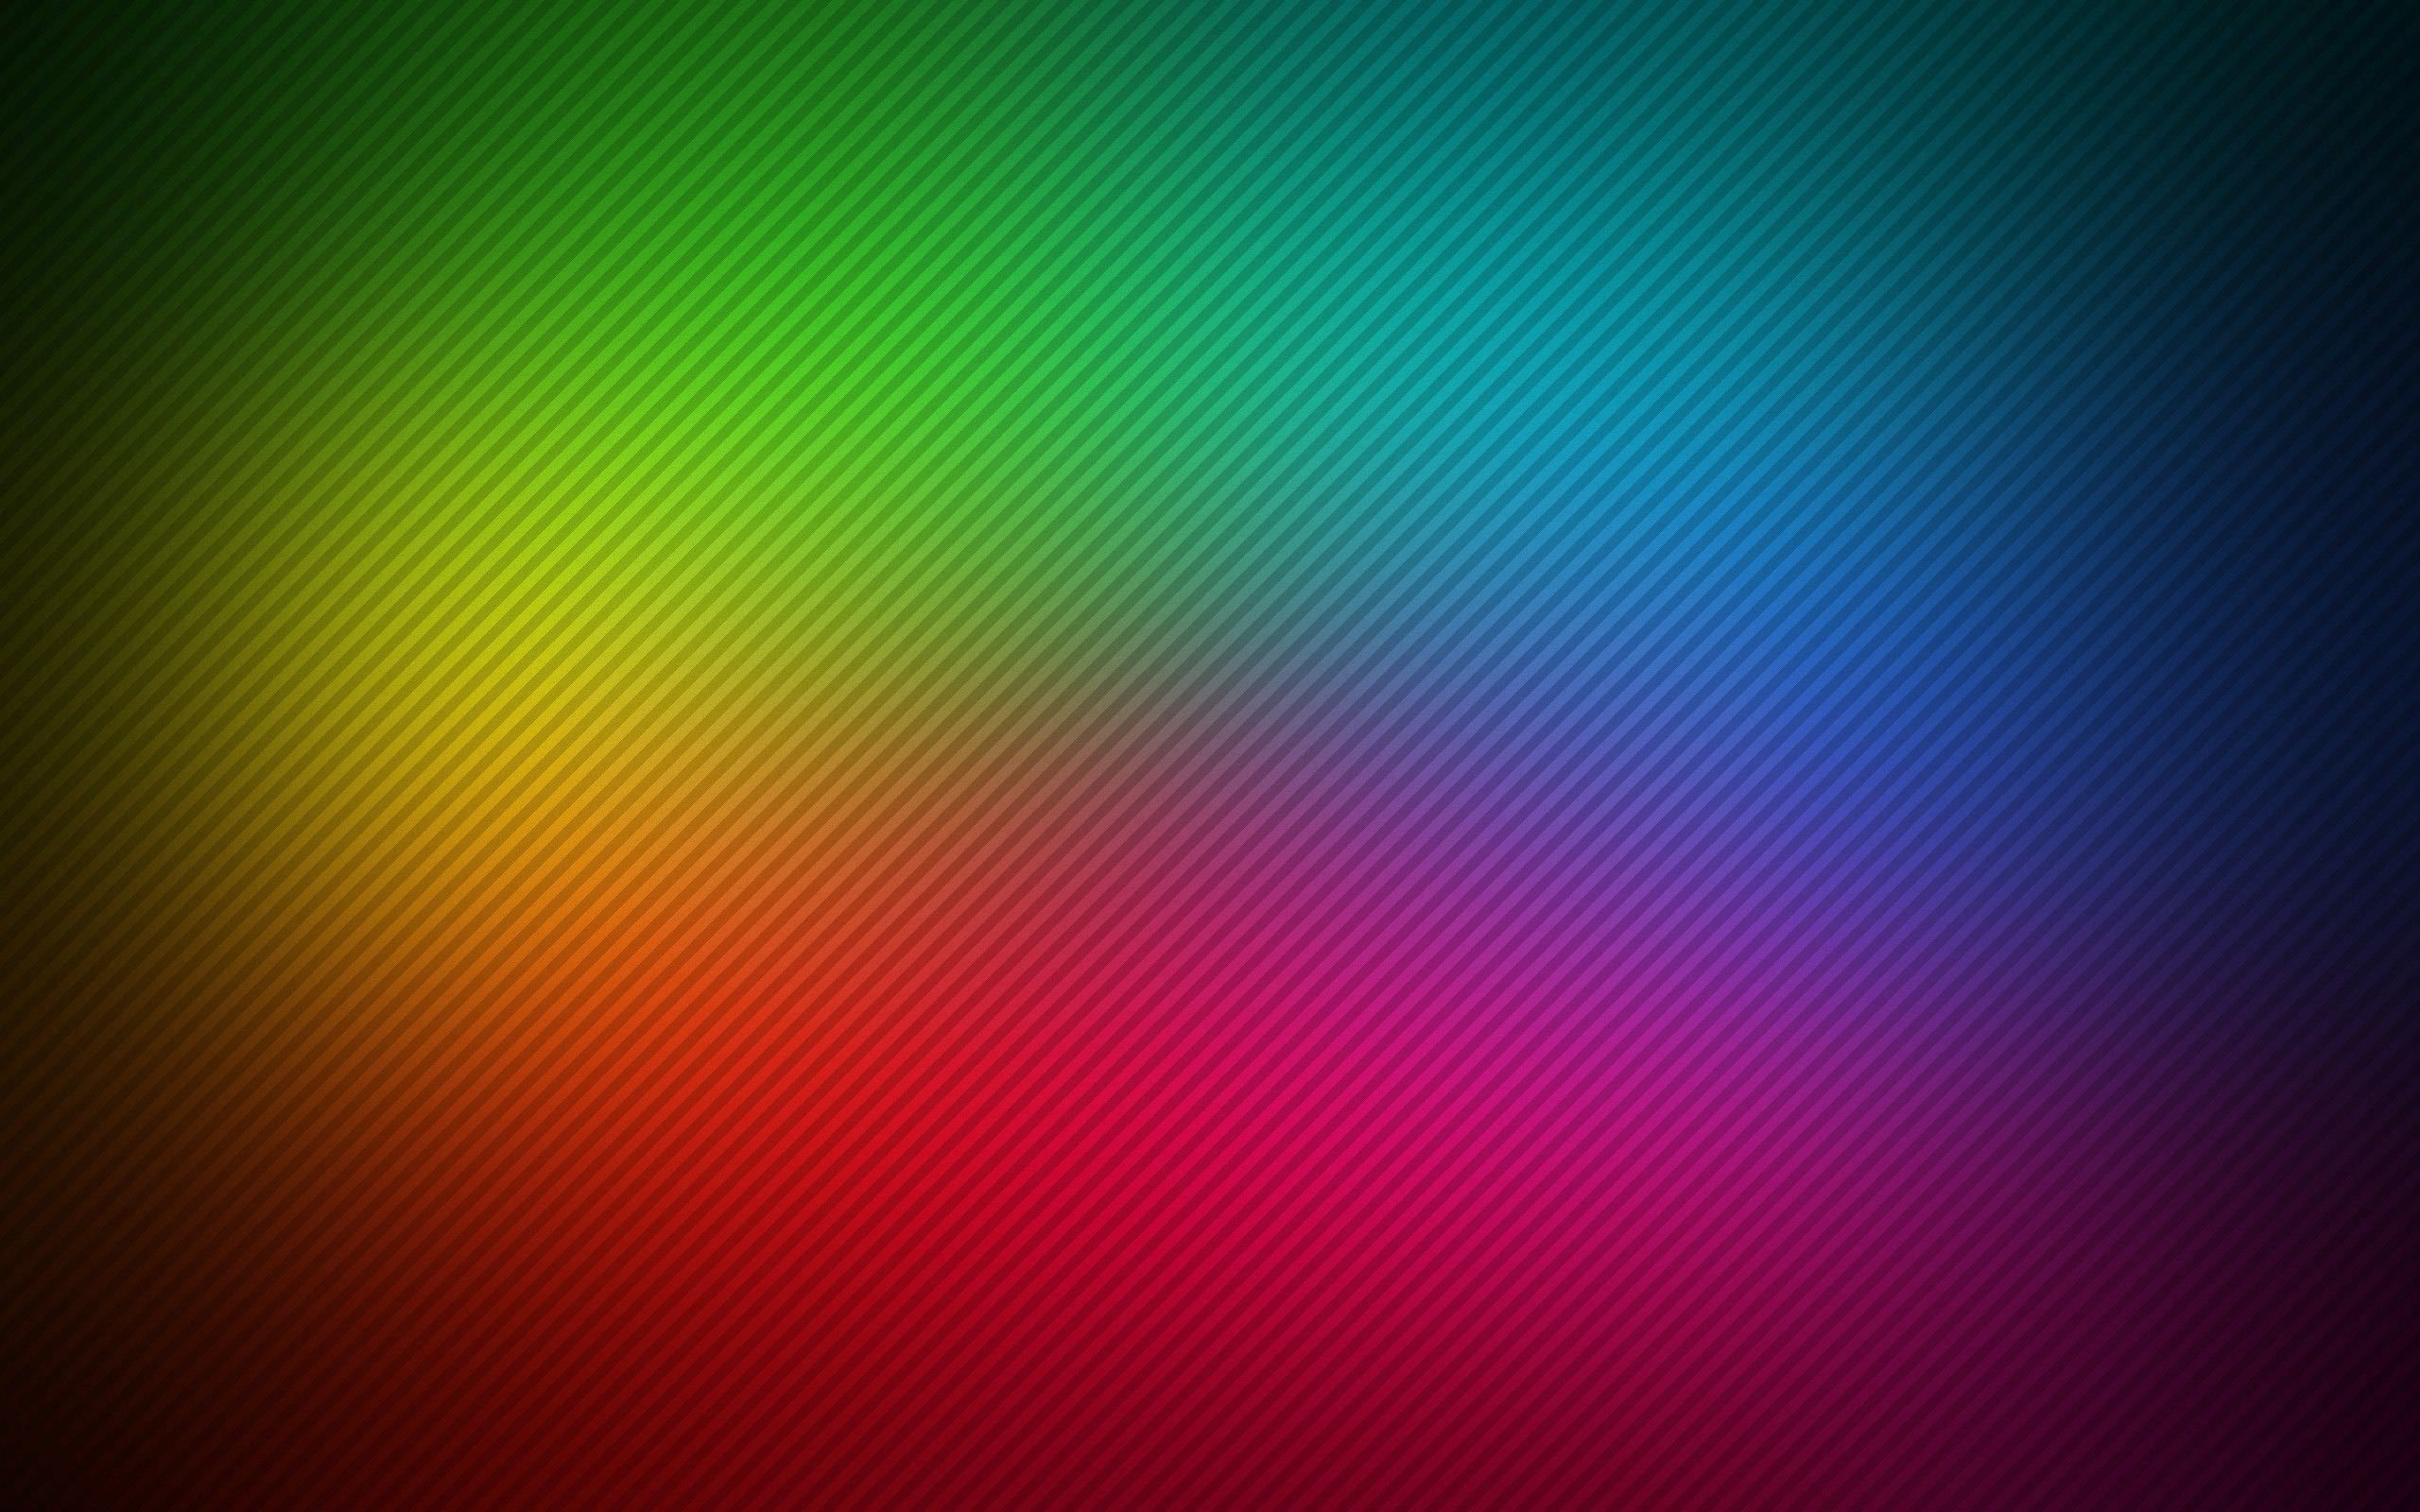 Res: 2560x1600, Bright Lines Resolution Image Wallpaper